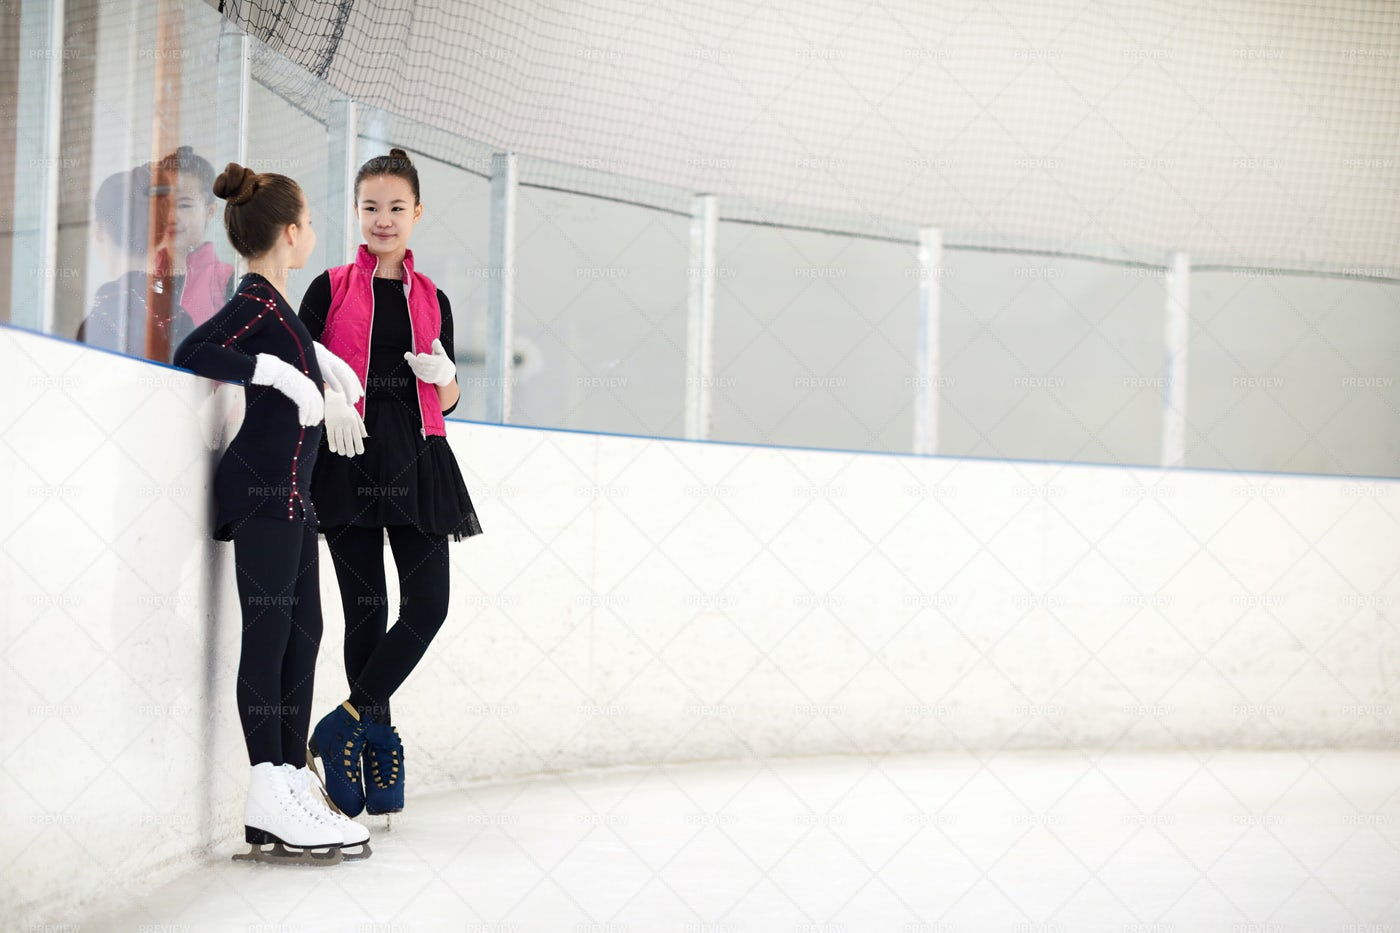 Two Figure Skaters Chatting: Stock Photos